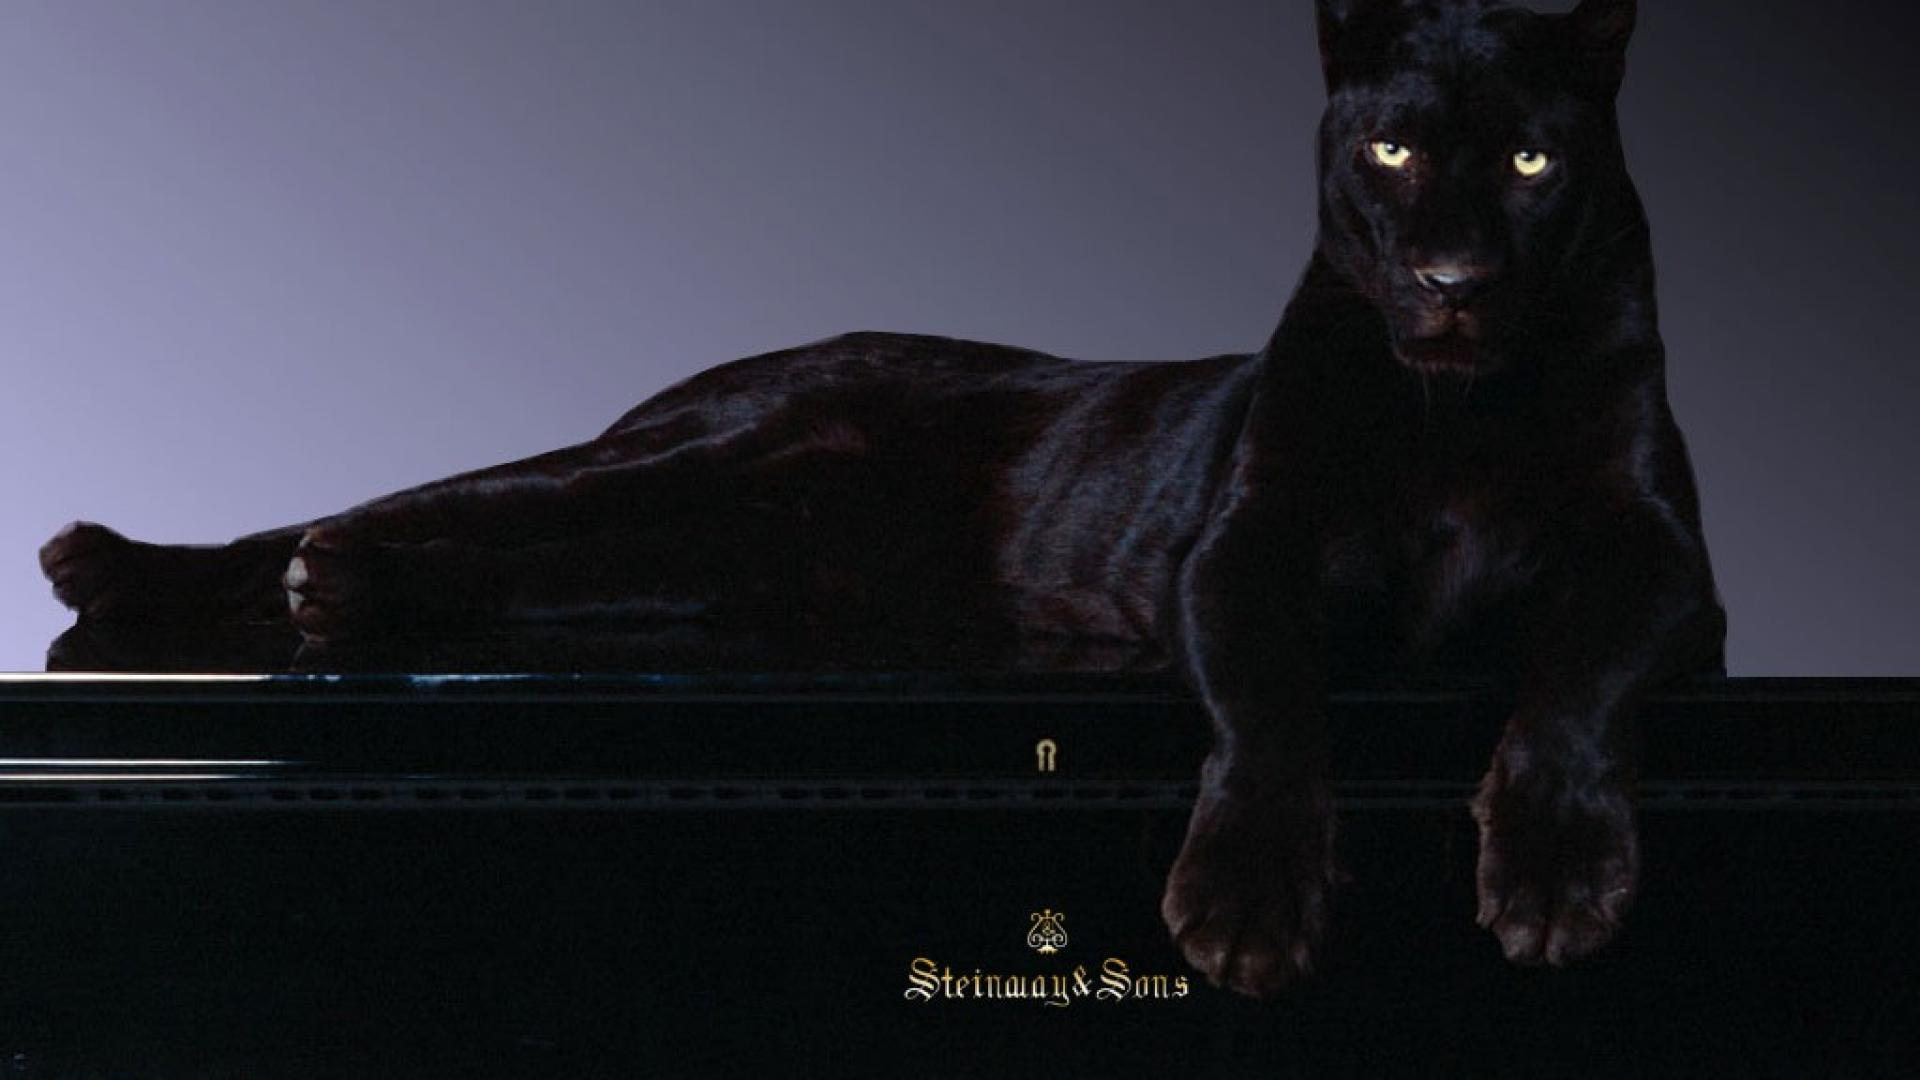 Hd Wallpapers Black Panther Hd Widescreen 11 HD Wallpapers 1920x1080